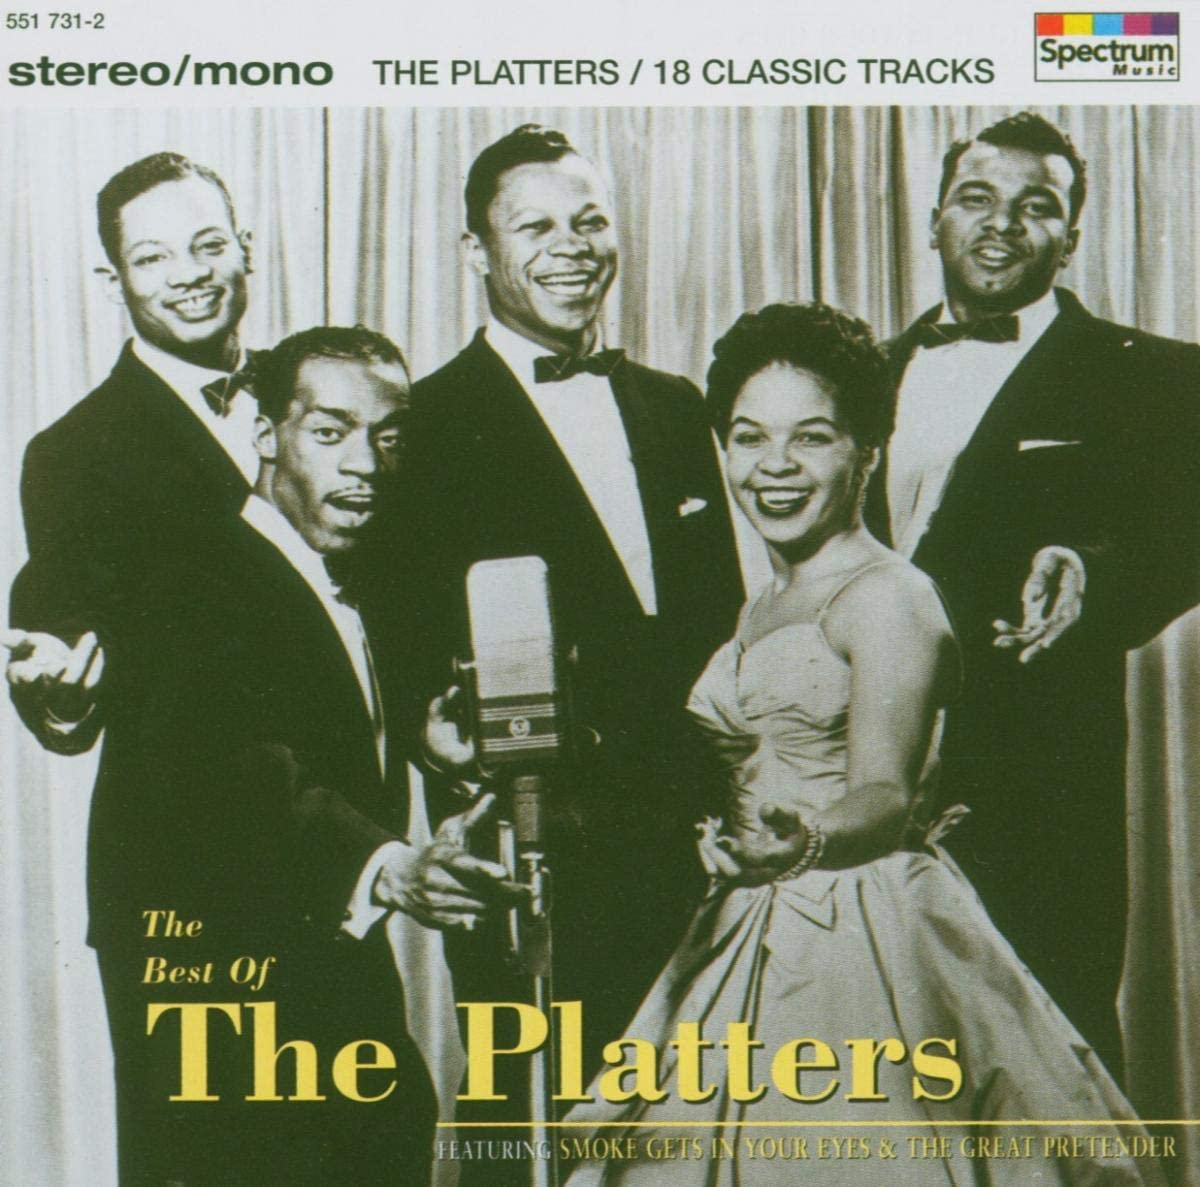 The Platters - CD The Best Of The Platters